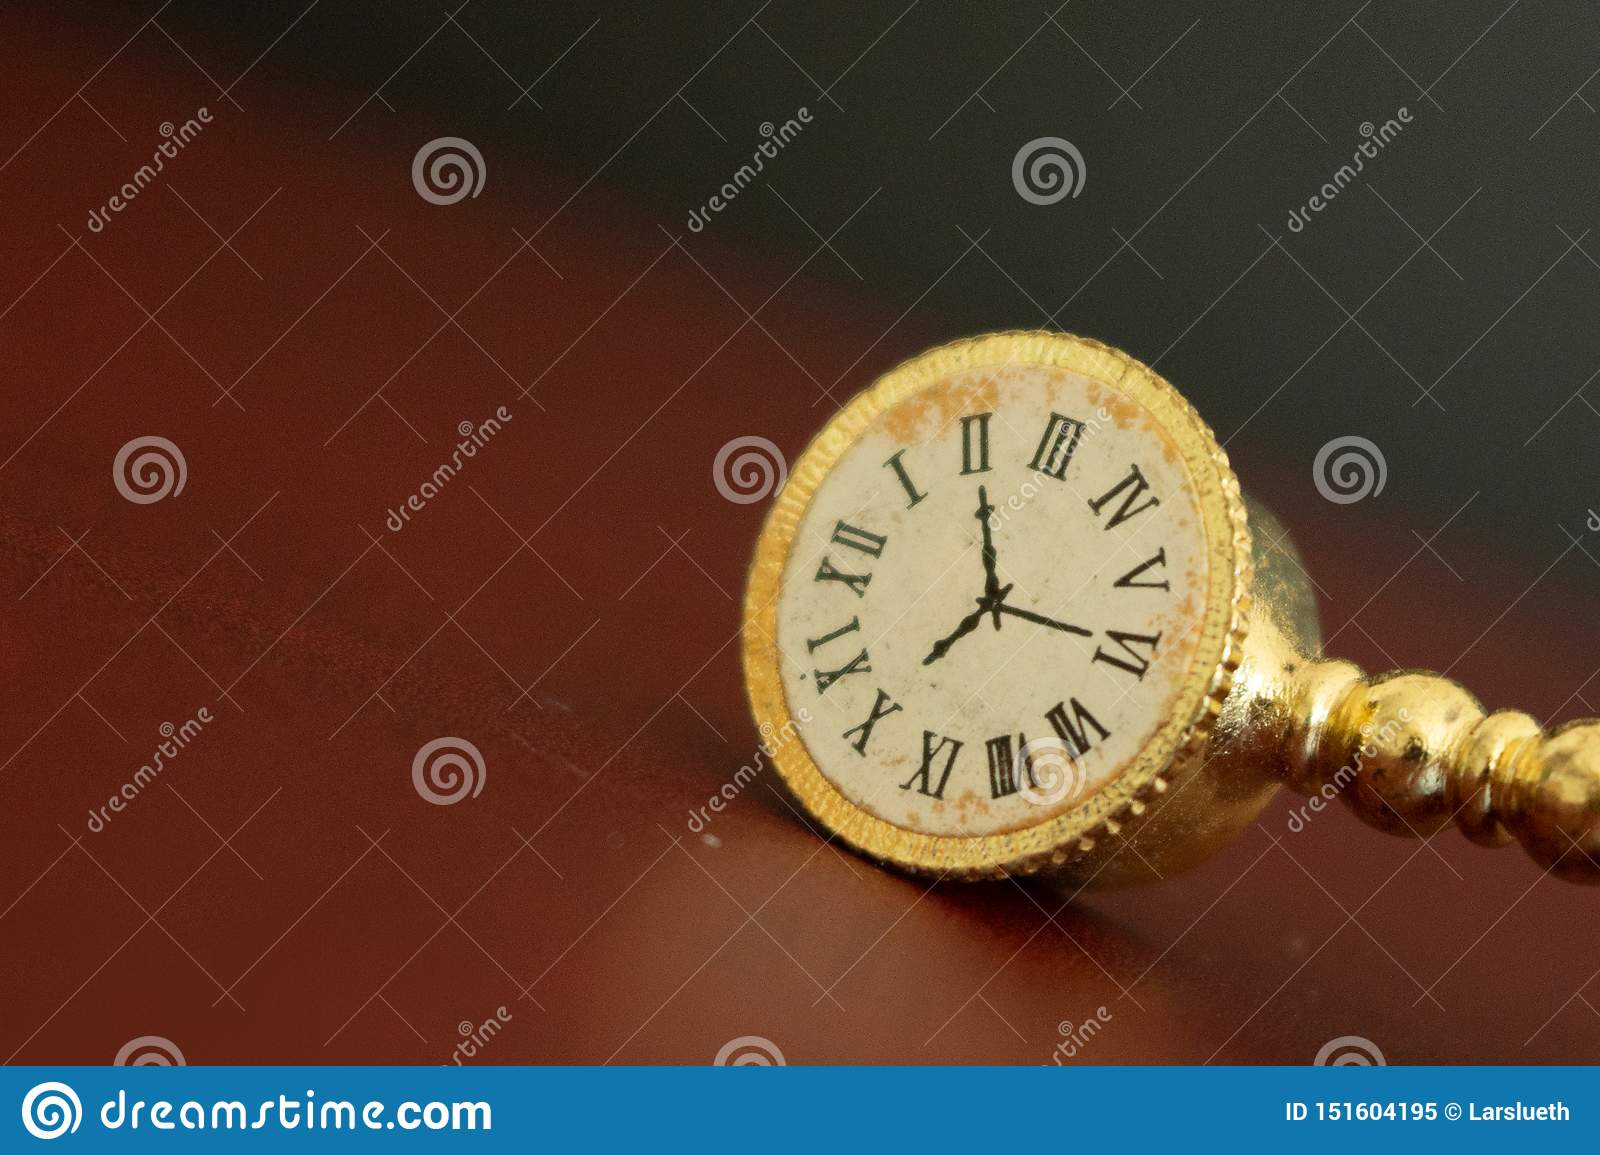 An old golden clock or watch showing the time running out.